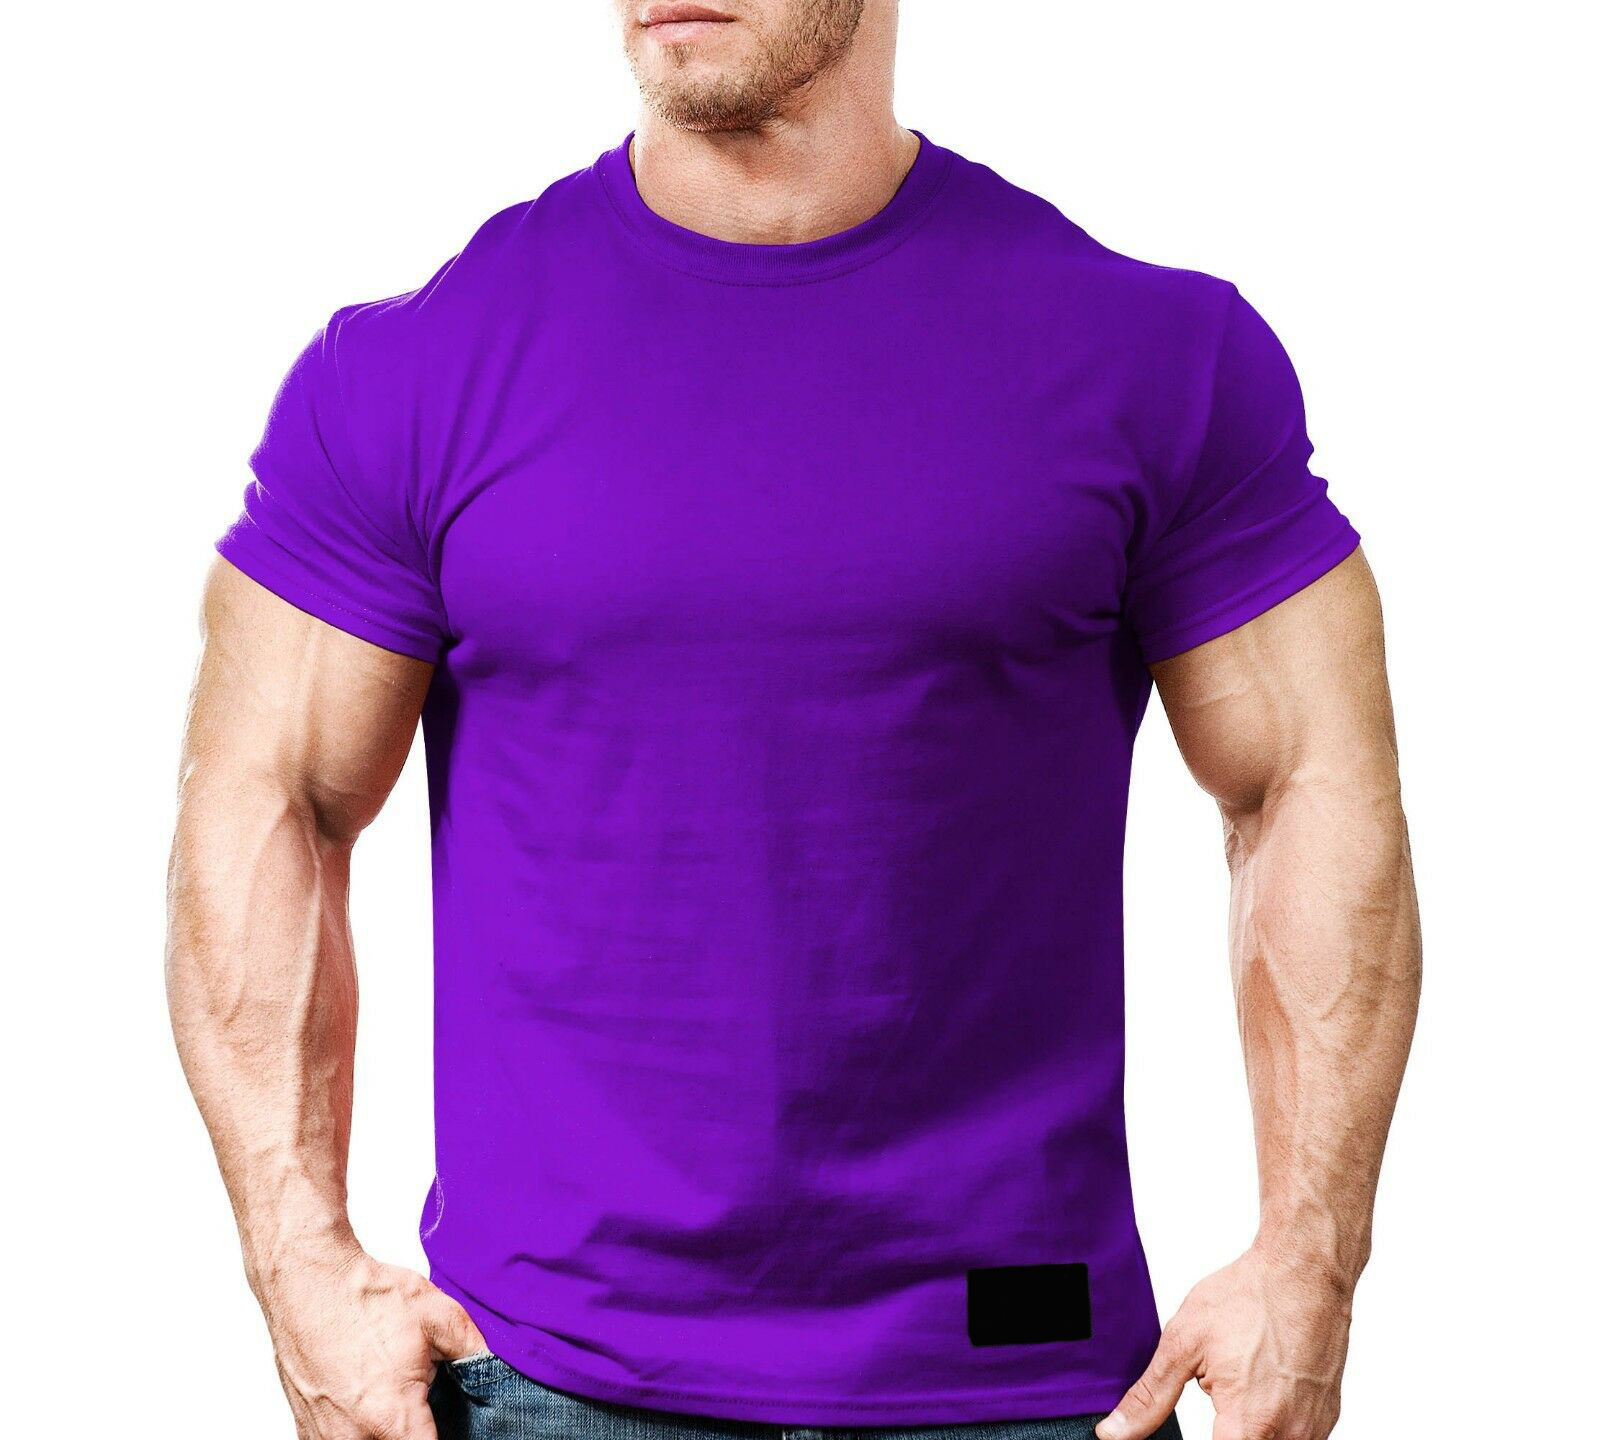 Mens Workwear Short Sleeve T-Shirt Regular and Big & Tall Sizes Cotton, Jersey Pull On closure